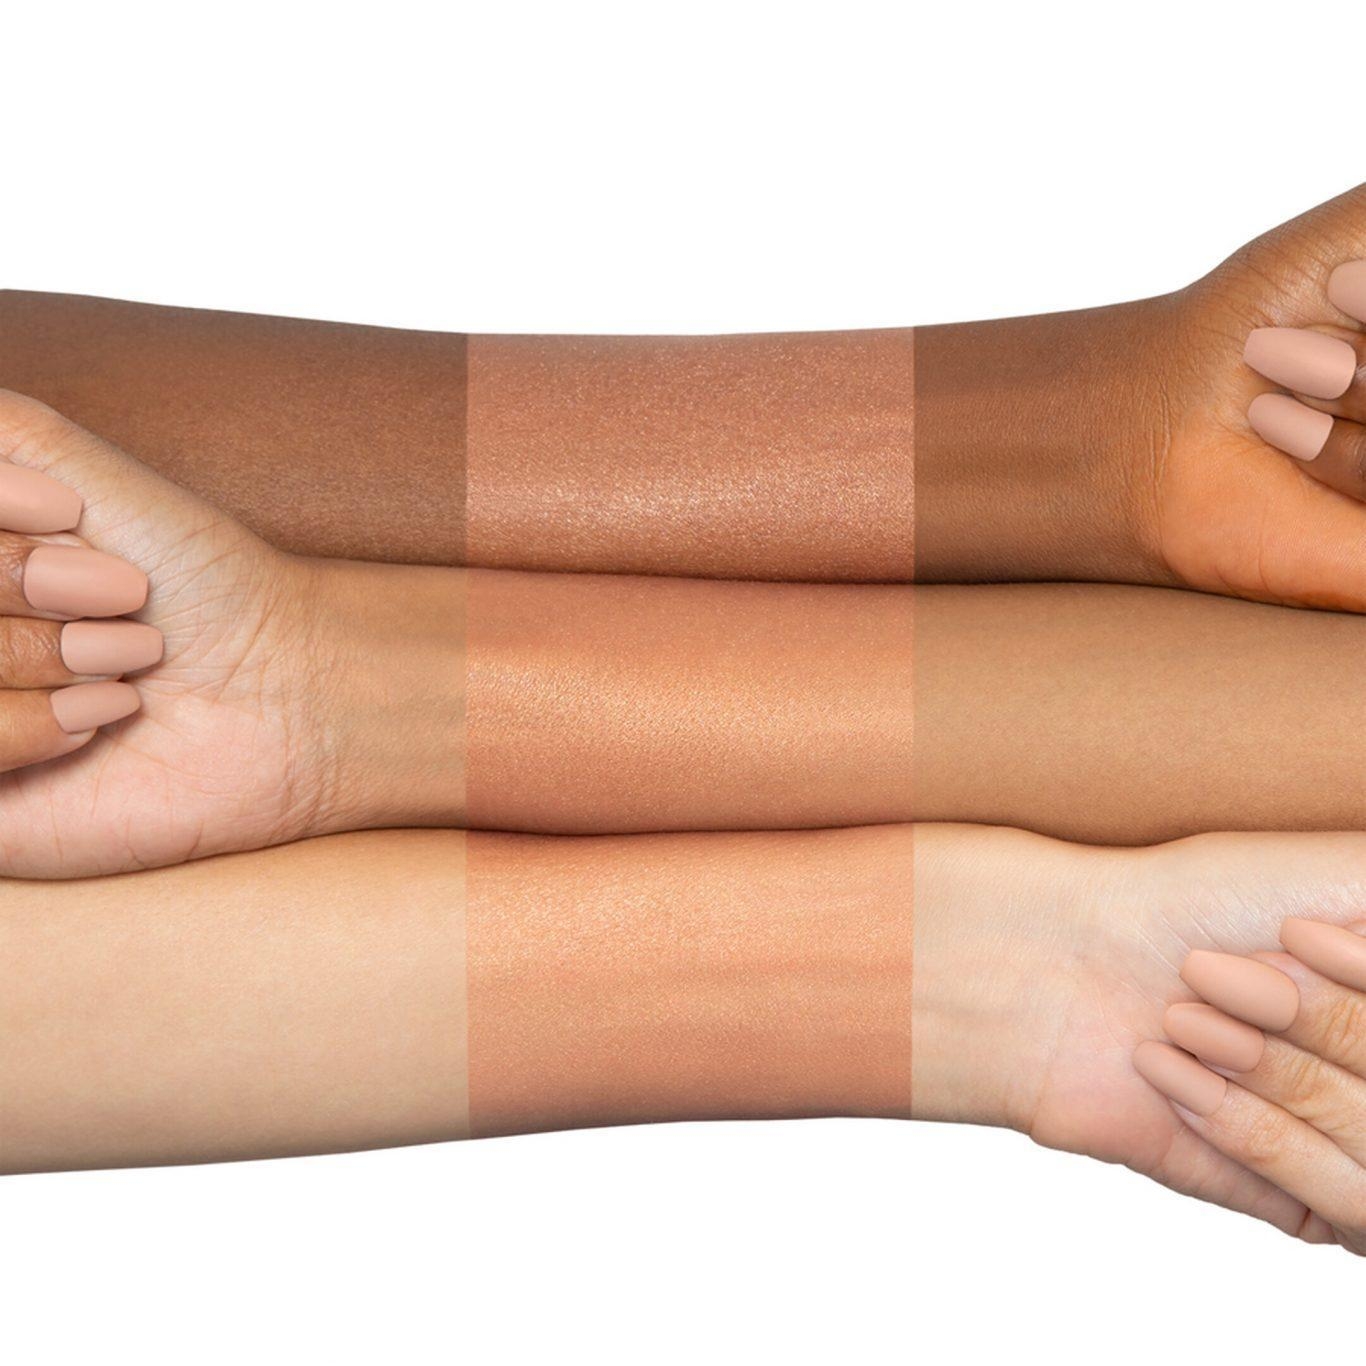 N.Y.M.P.H. All Over Glow Helios Arm Swatches